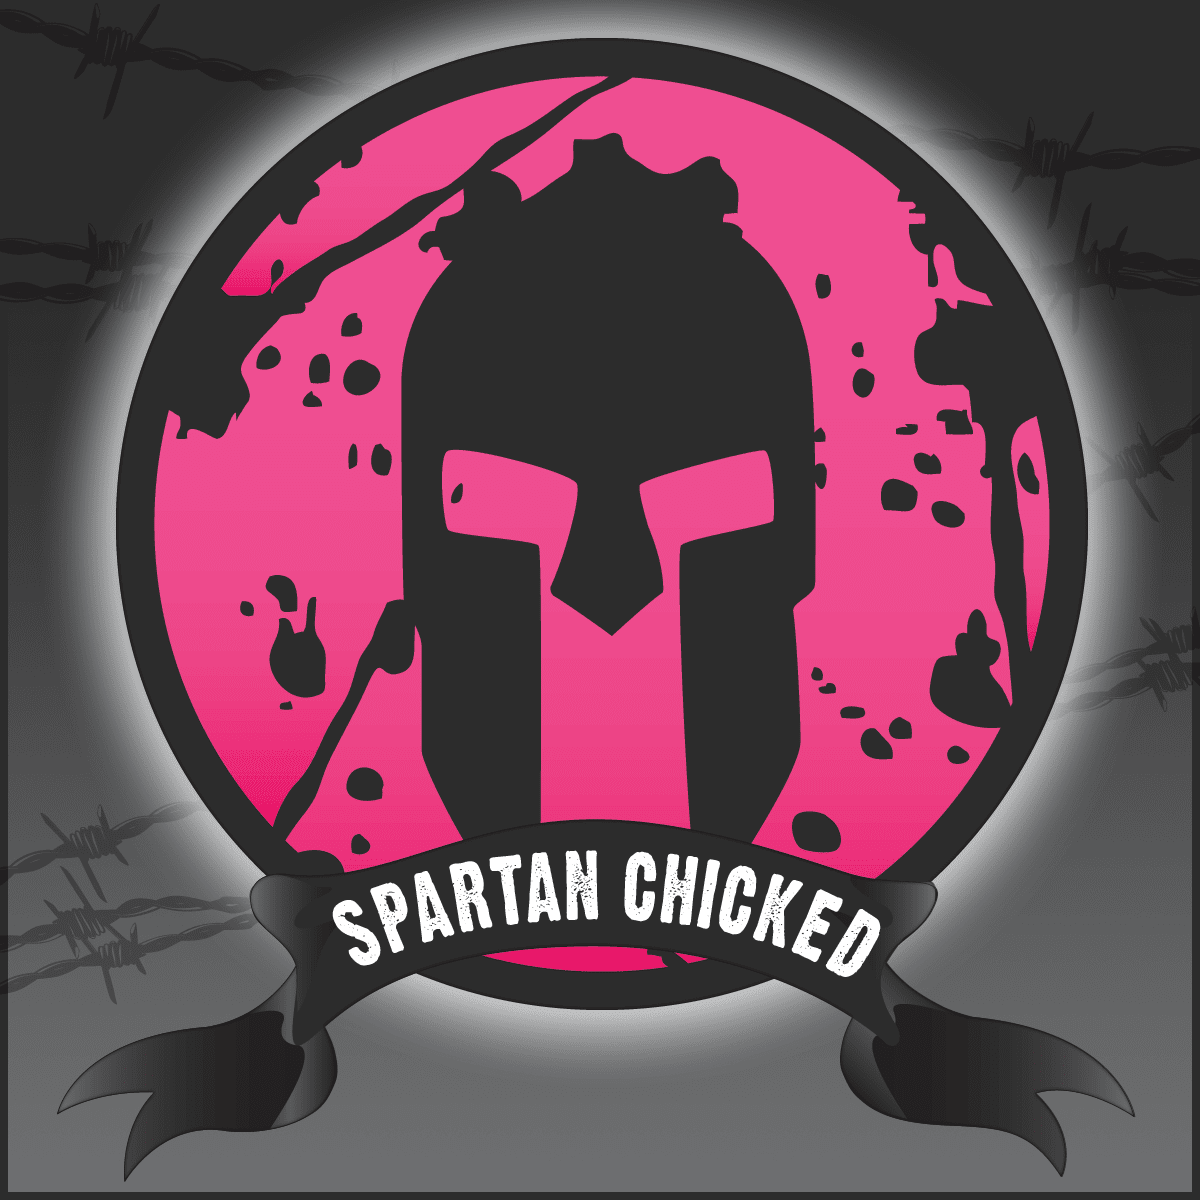 Spartan Chicked: Spartan Chicked...The Beginnings